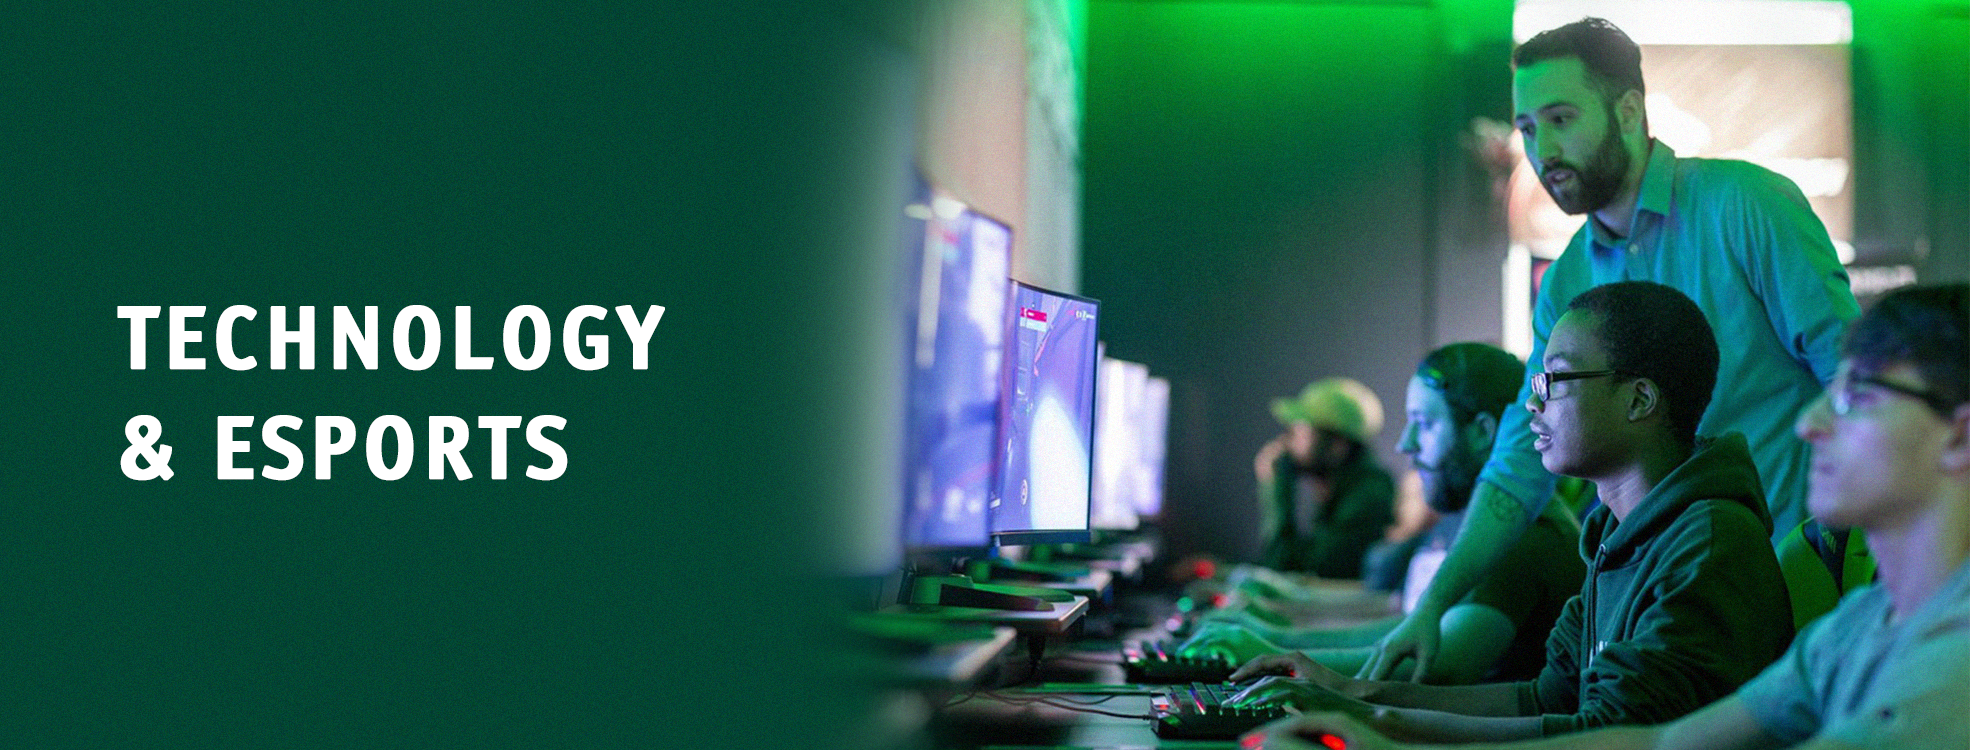 eSports and Technology | Summer Pre-College Program for High School Students at Wagner College